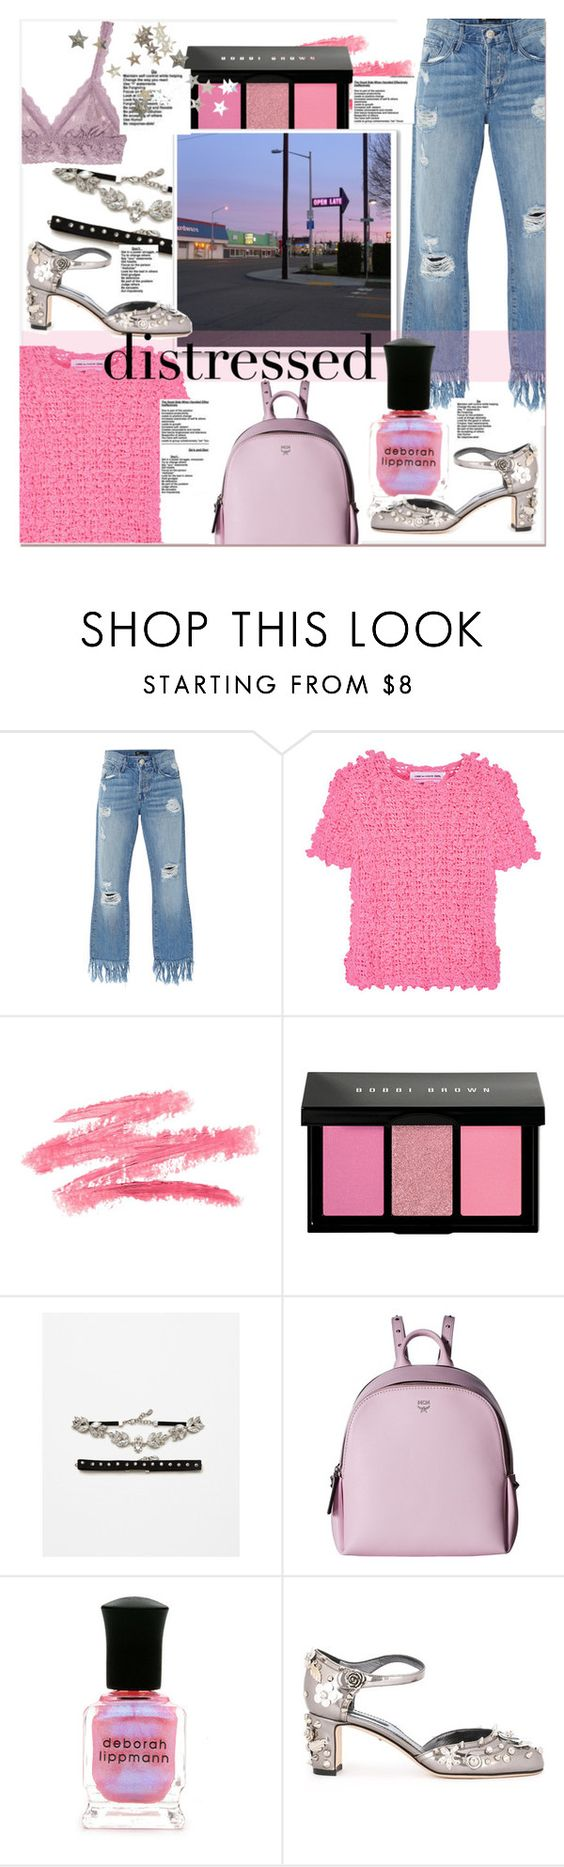 """""""Dressed in distressed"""" by fashionistalooks ❤ liked on Polyvore featuring 3x1, Comme des Garçons GIRL, Bobbi Brown Cosmetics, MCM, Deborah Lippmann, Dolce&Gabbana and Hanky Panky"""